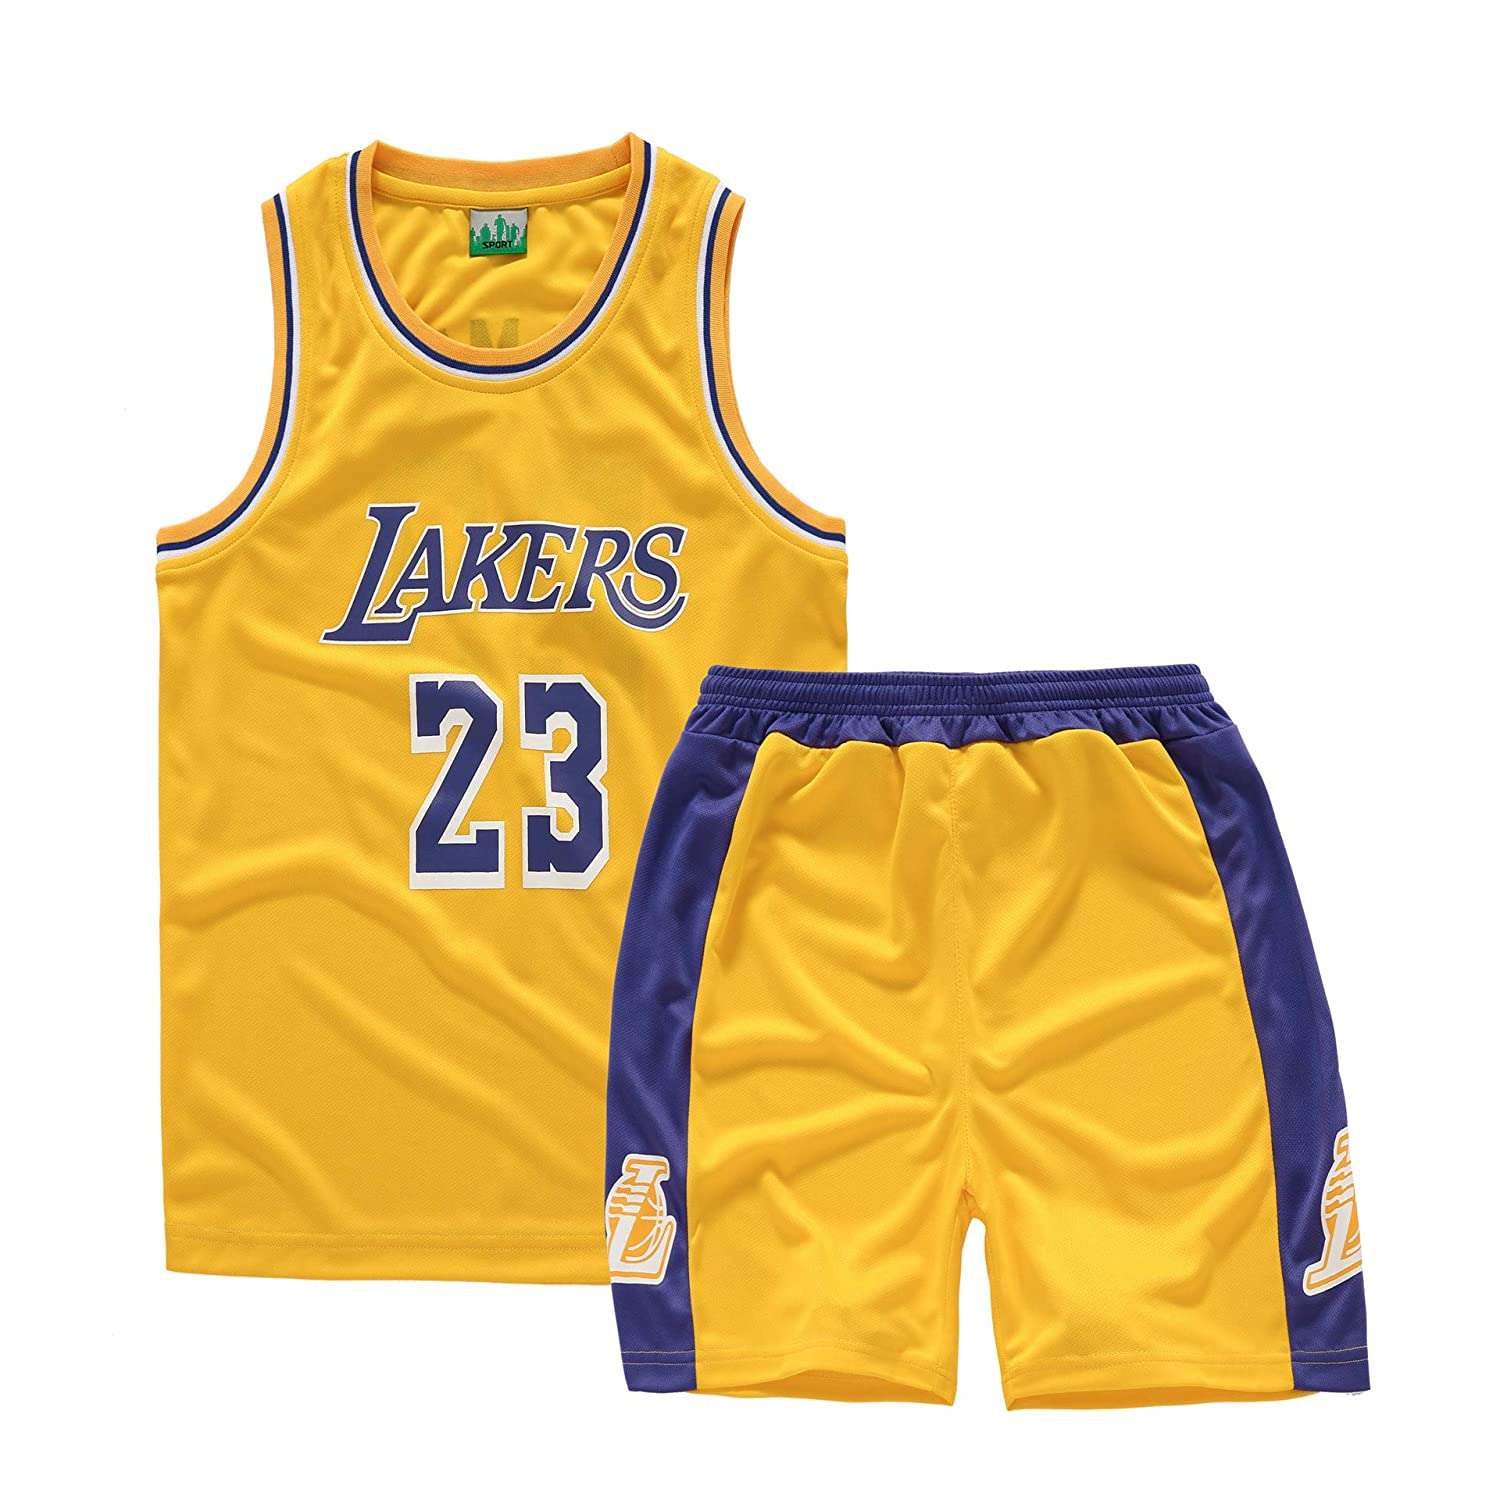 Lakers # 23 James 2019 Sportif Basketball Jersey T-Shirt Tops Shorts pour Les Amateurs De Basket Basket Maillots Uniforme De Basket-Ball pour Les Enfants Taille 110-165 cm